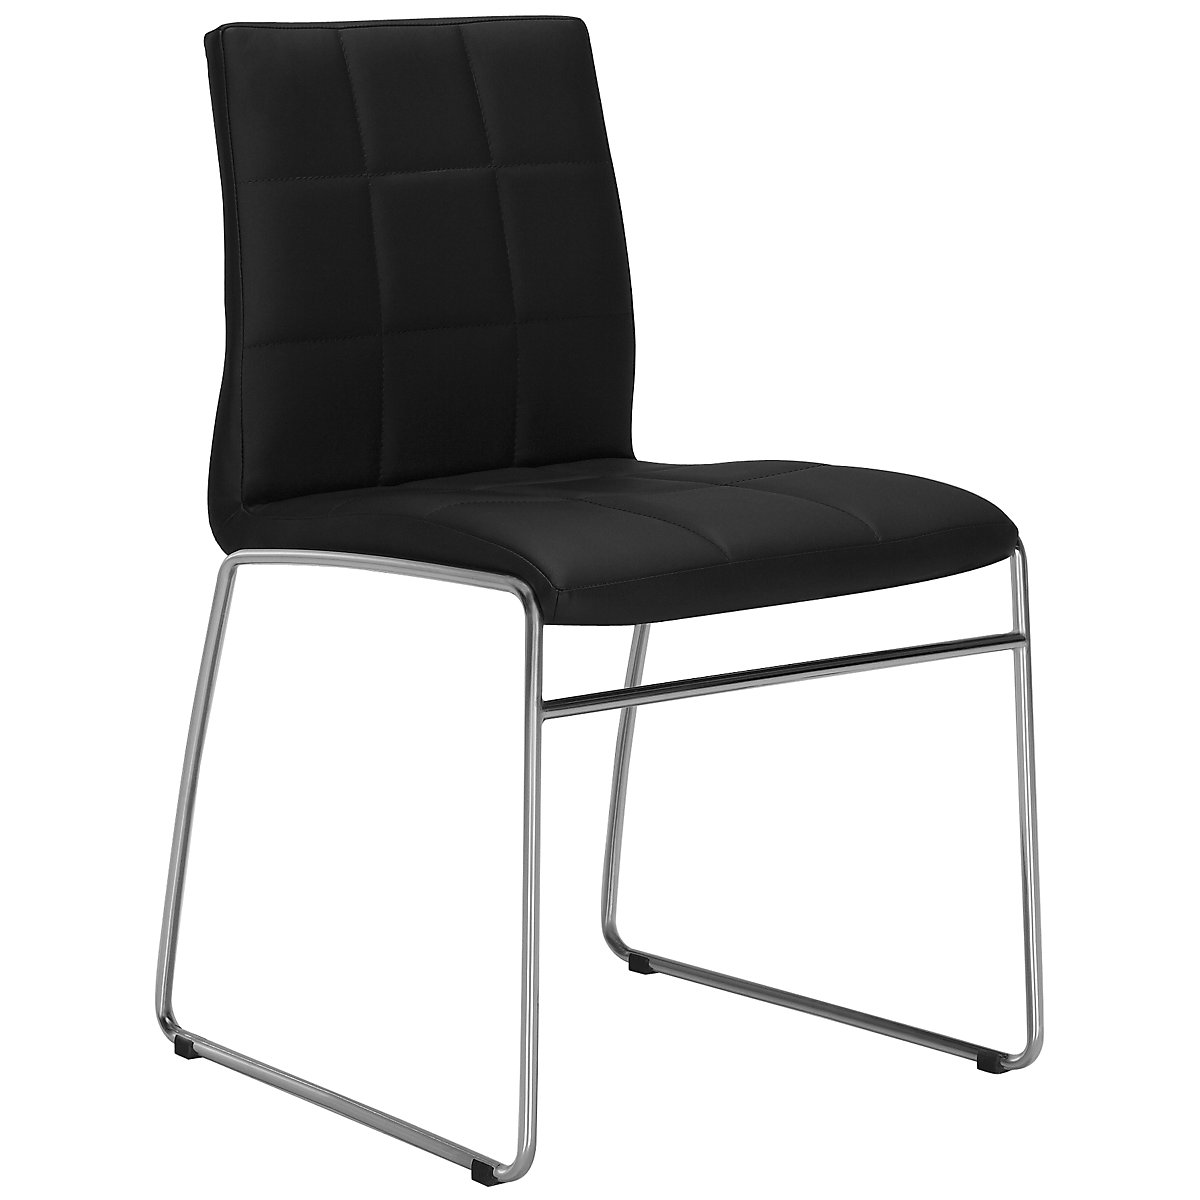 Napoli Black Upholstered Side Chair